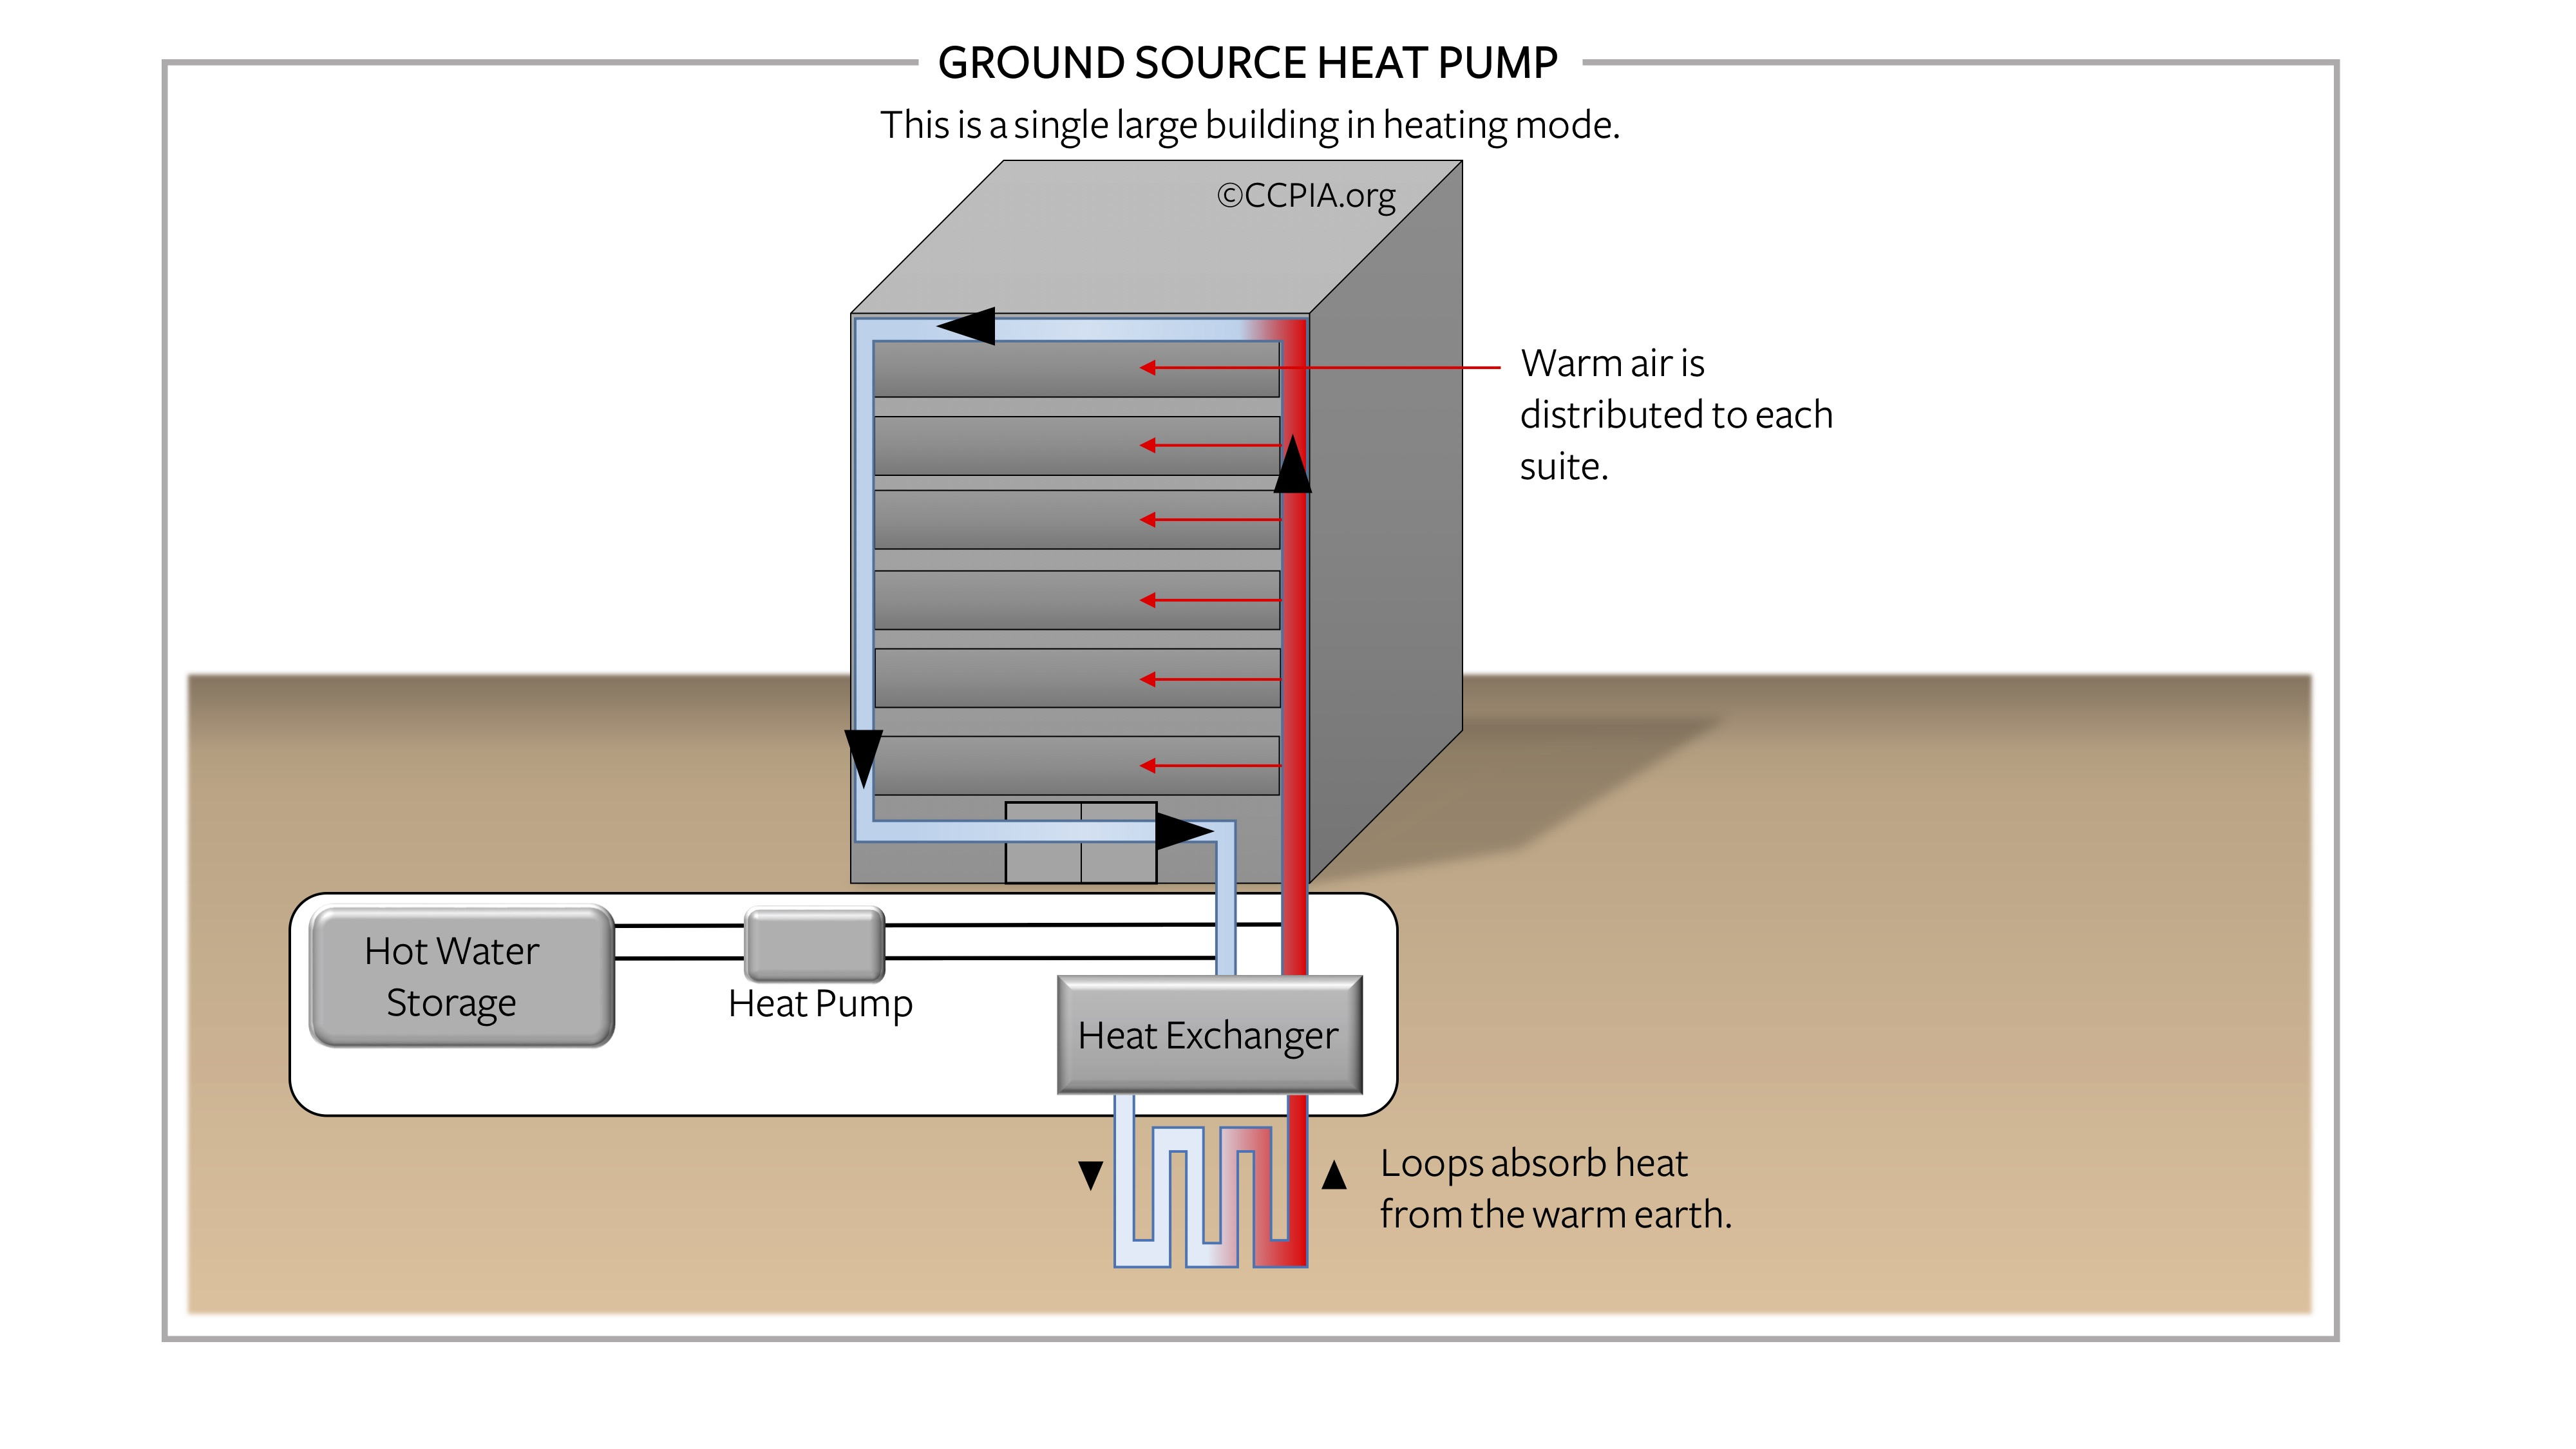 Commercial building ground source heat pump.